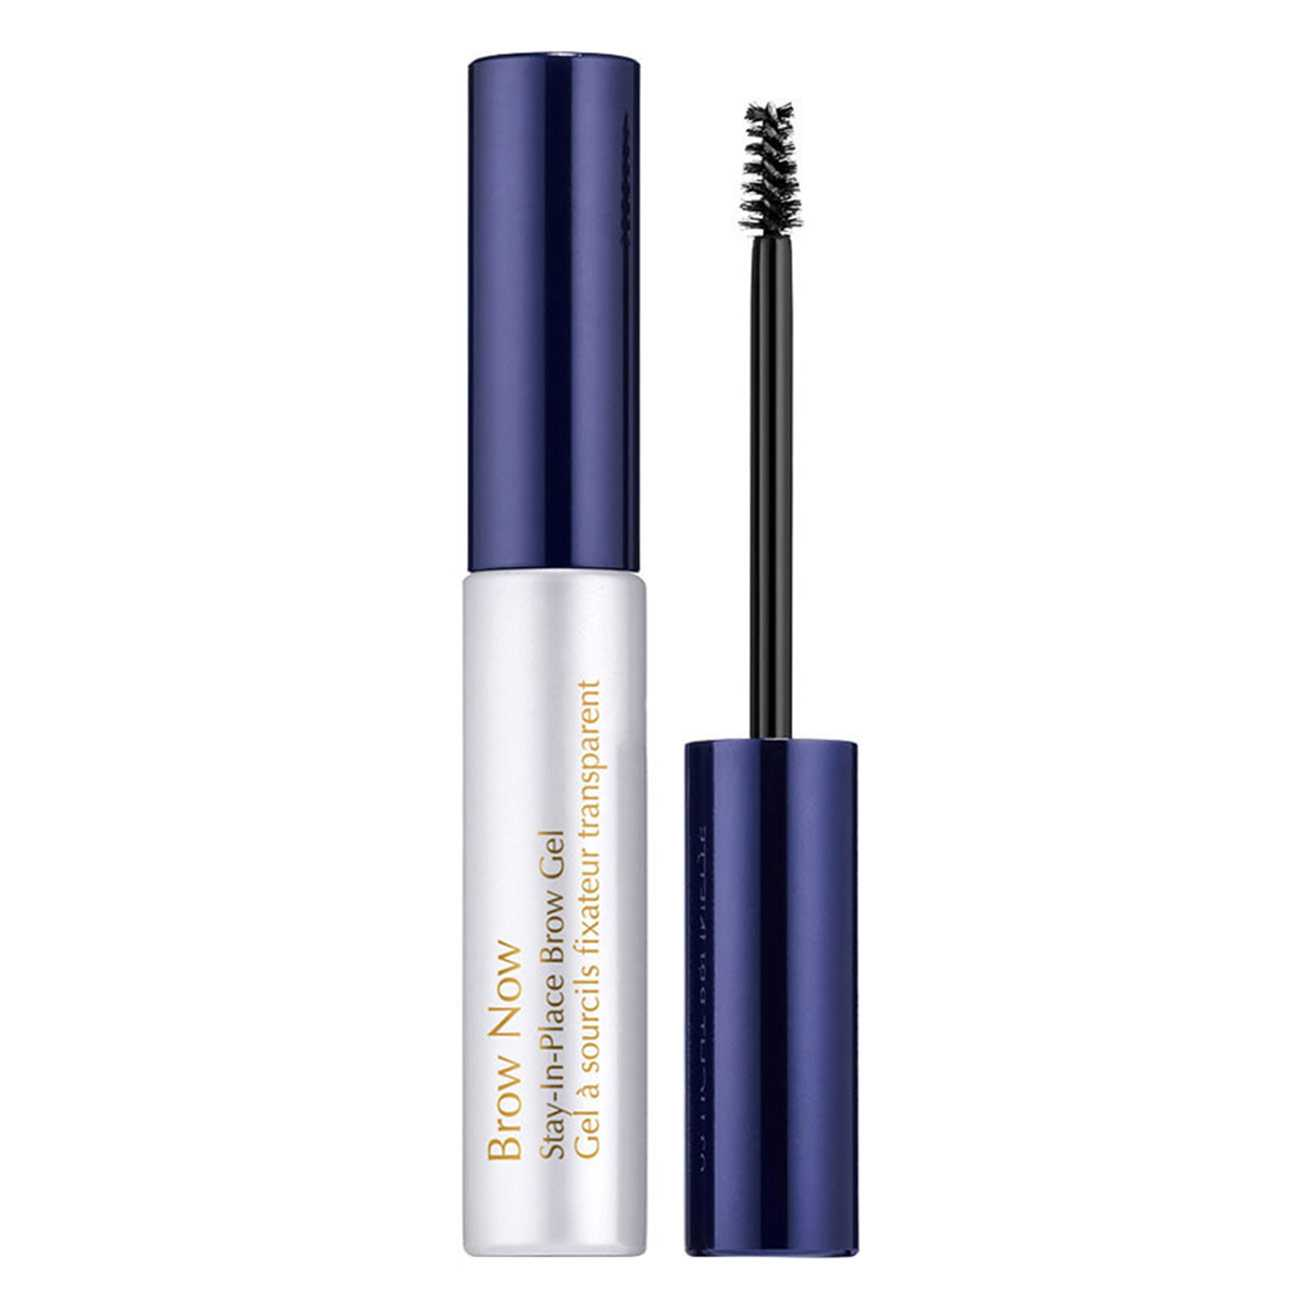 STAY-IN-PLACE BROW GEL 1.7 G imagine produs